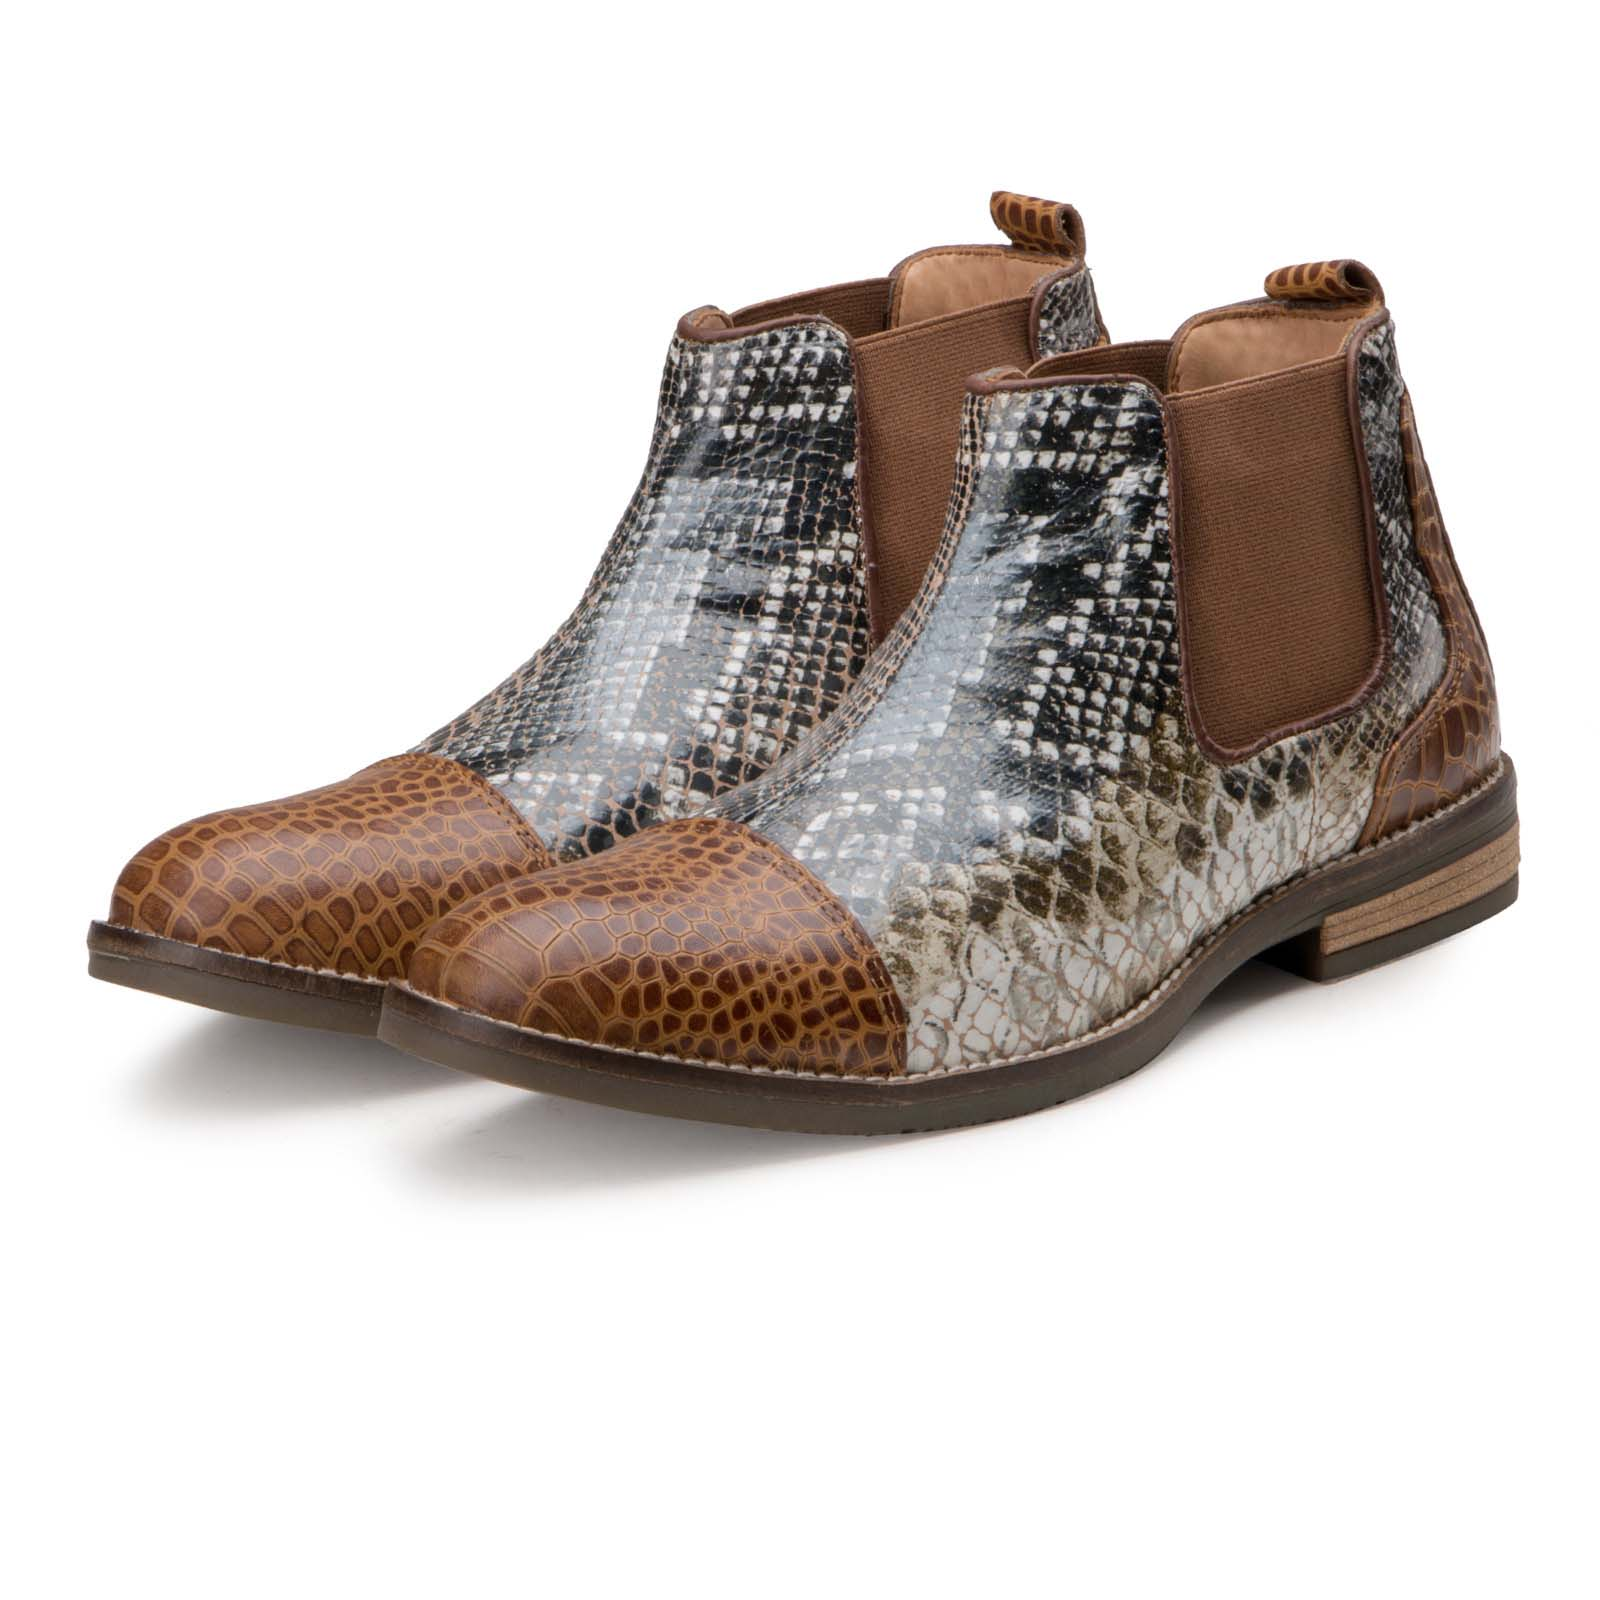 """Serpent"" Snake and Crocodile Foiled Chelsea Boots"